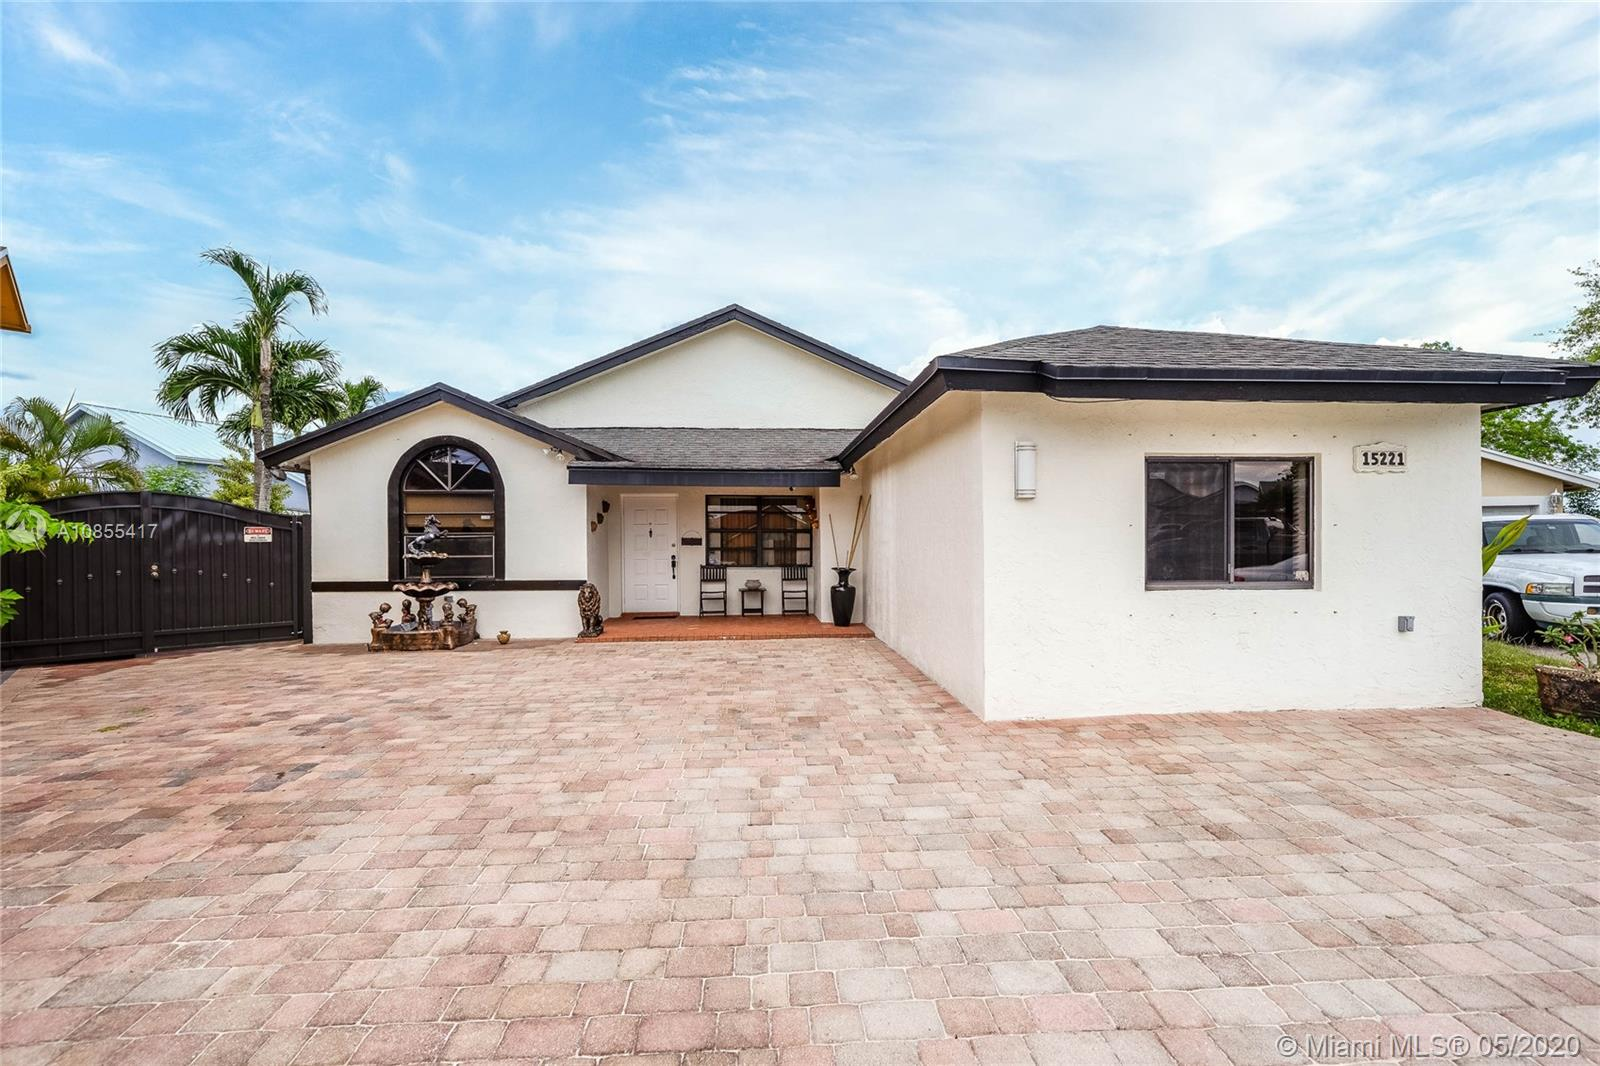 15221 SW 58th Ter, Kendall West, Florida